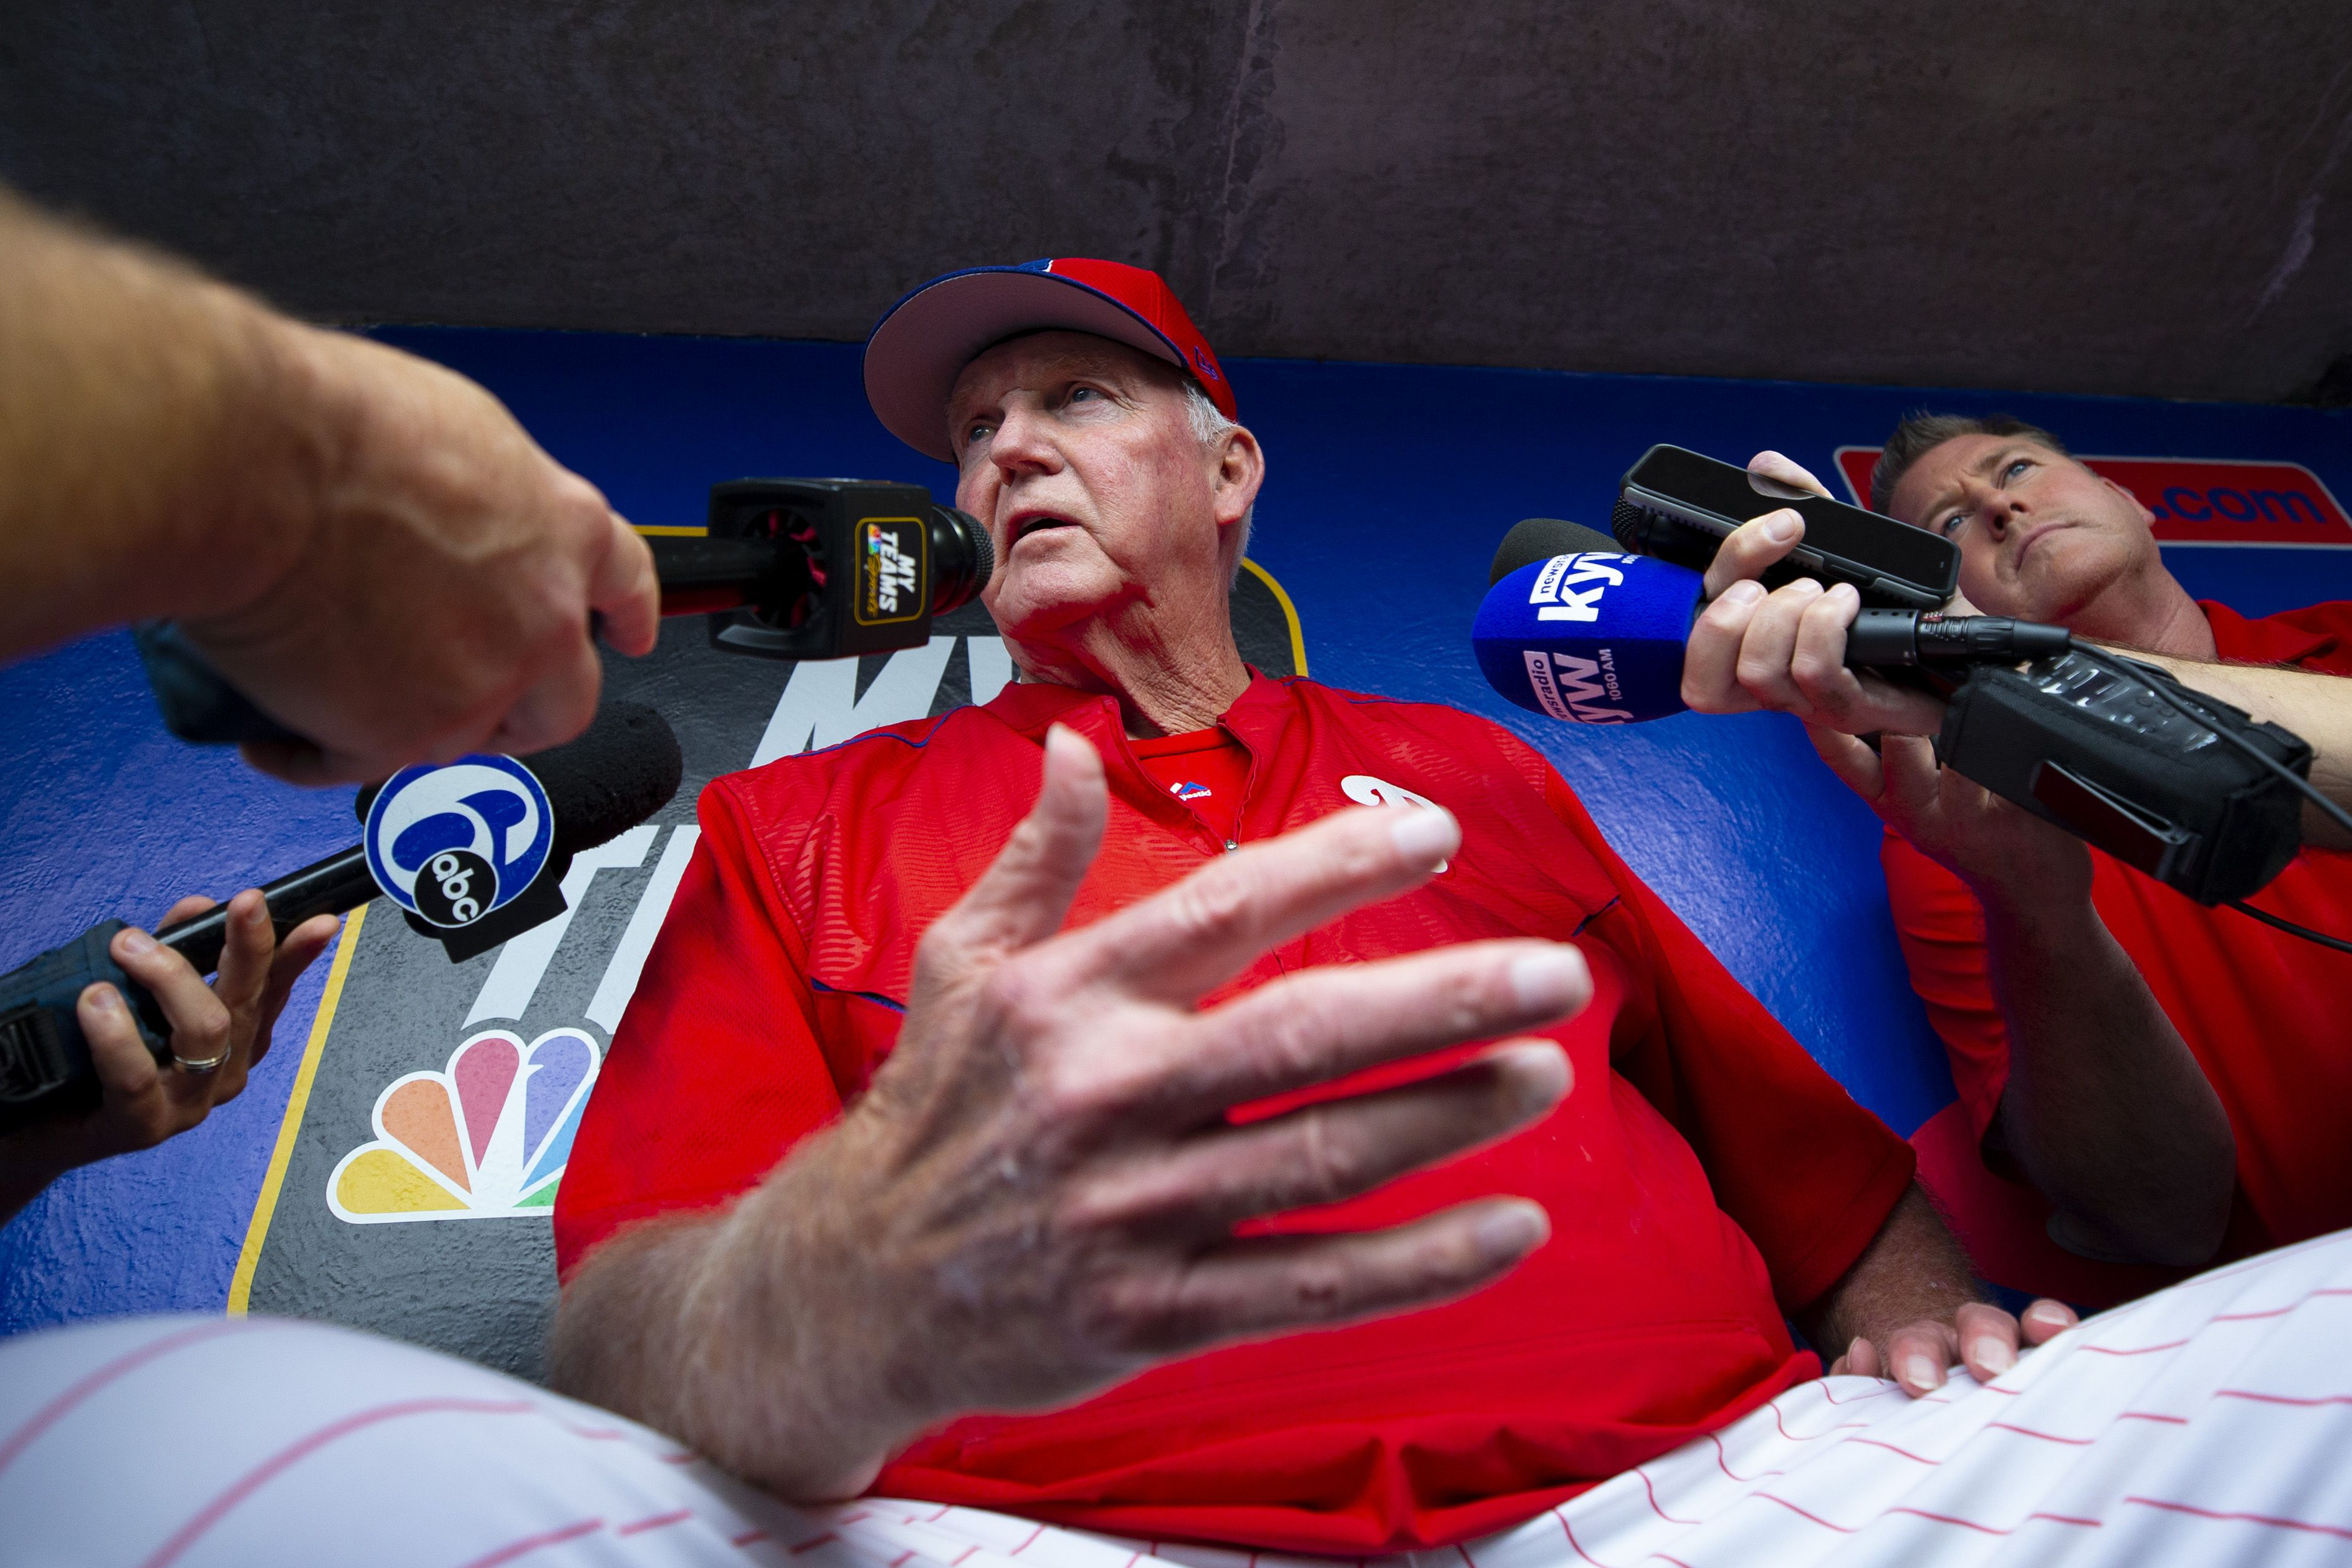 Charlie Manuel talking to the media